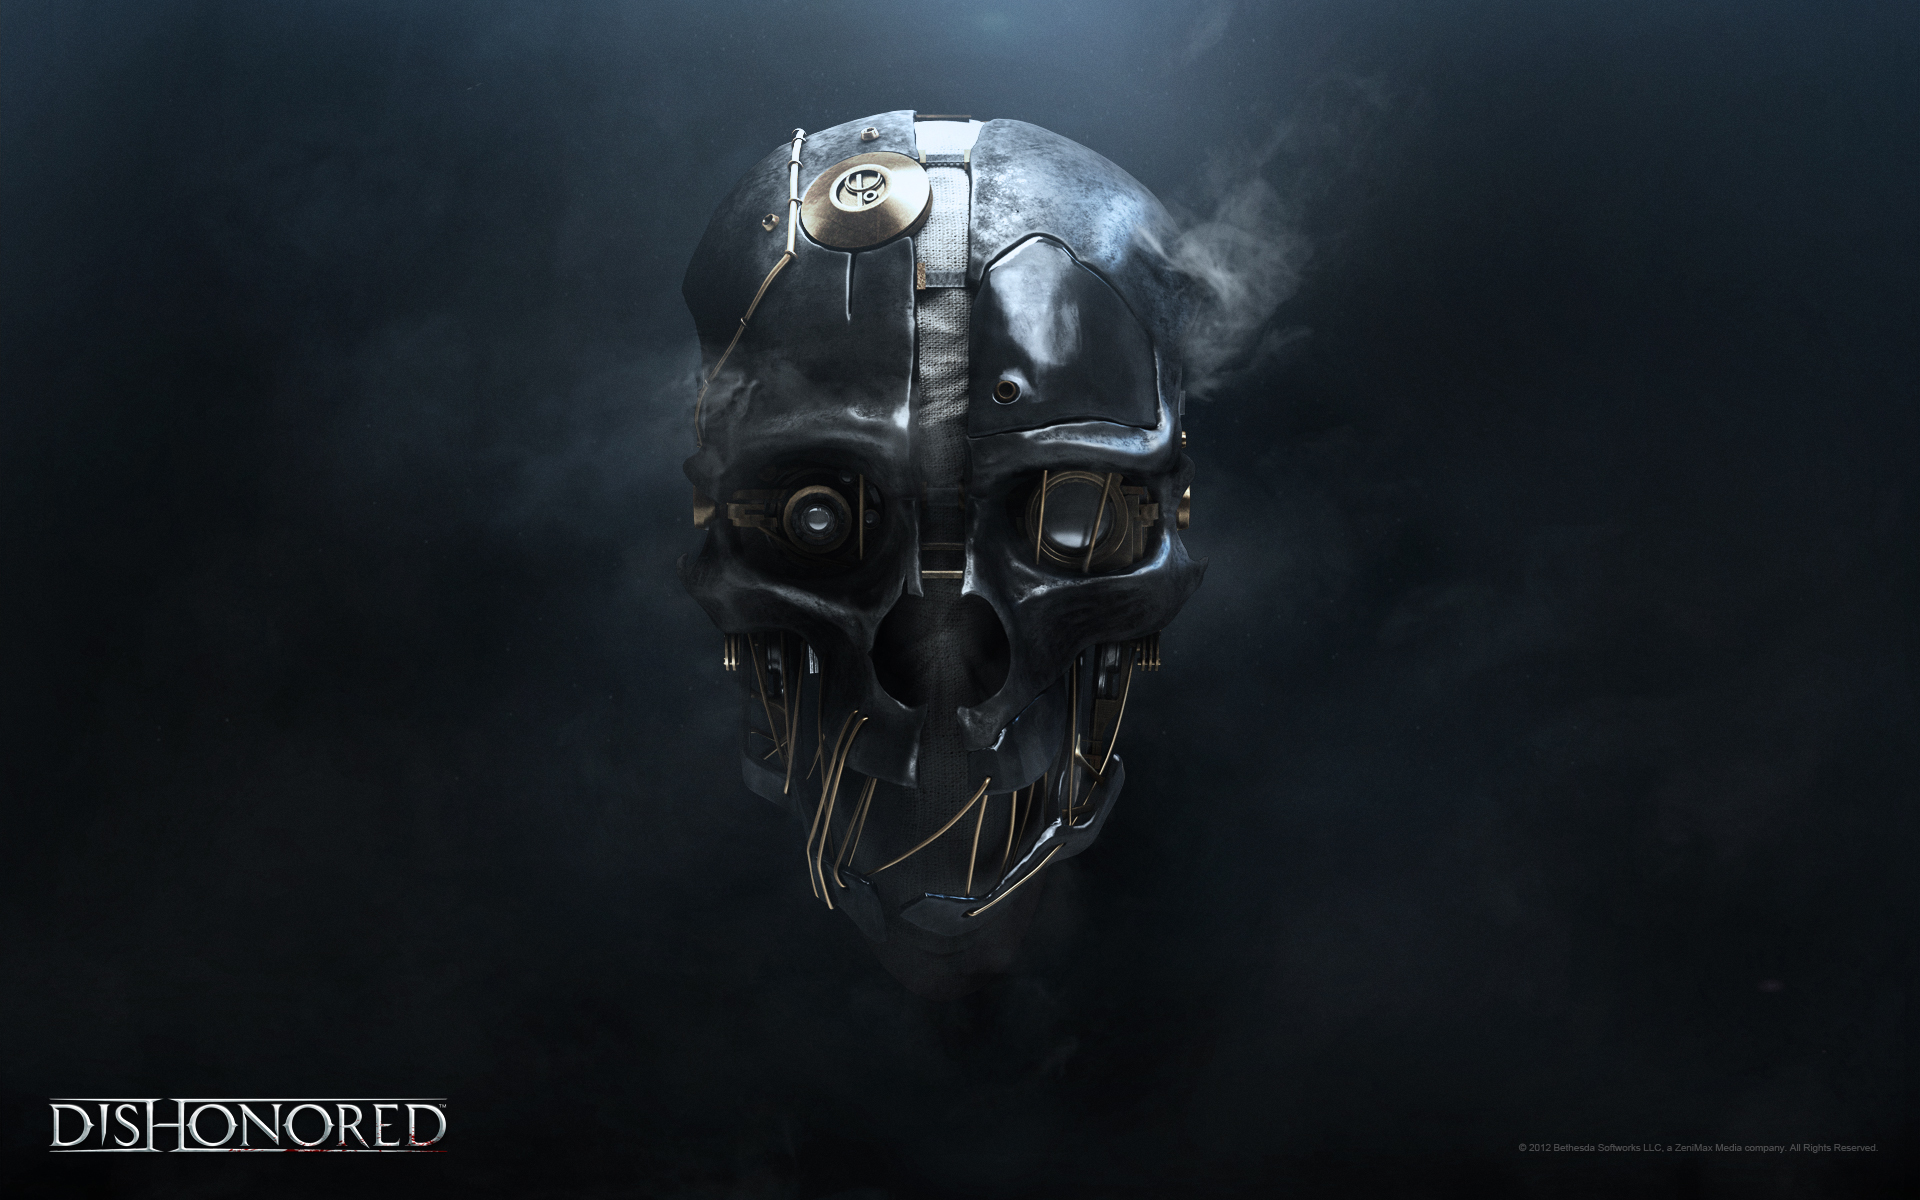 22652 download wallpaper Games, Dishonored screensavers and pictures for free